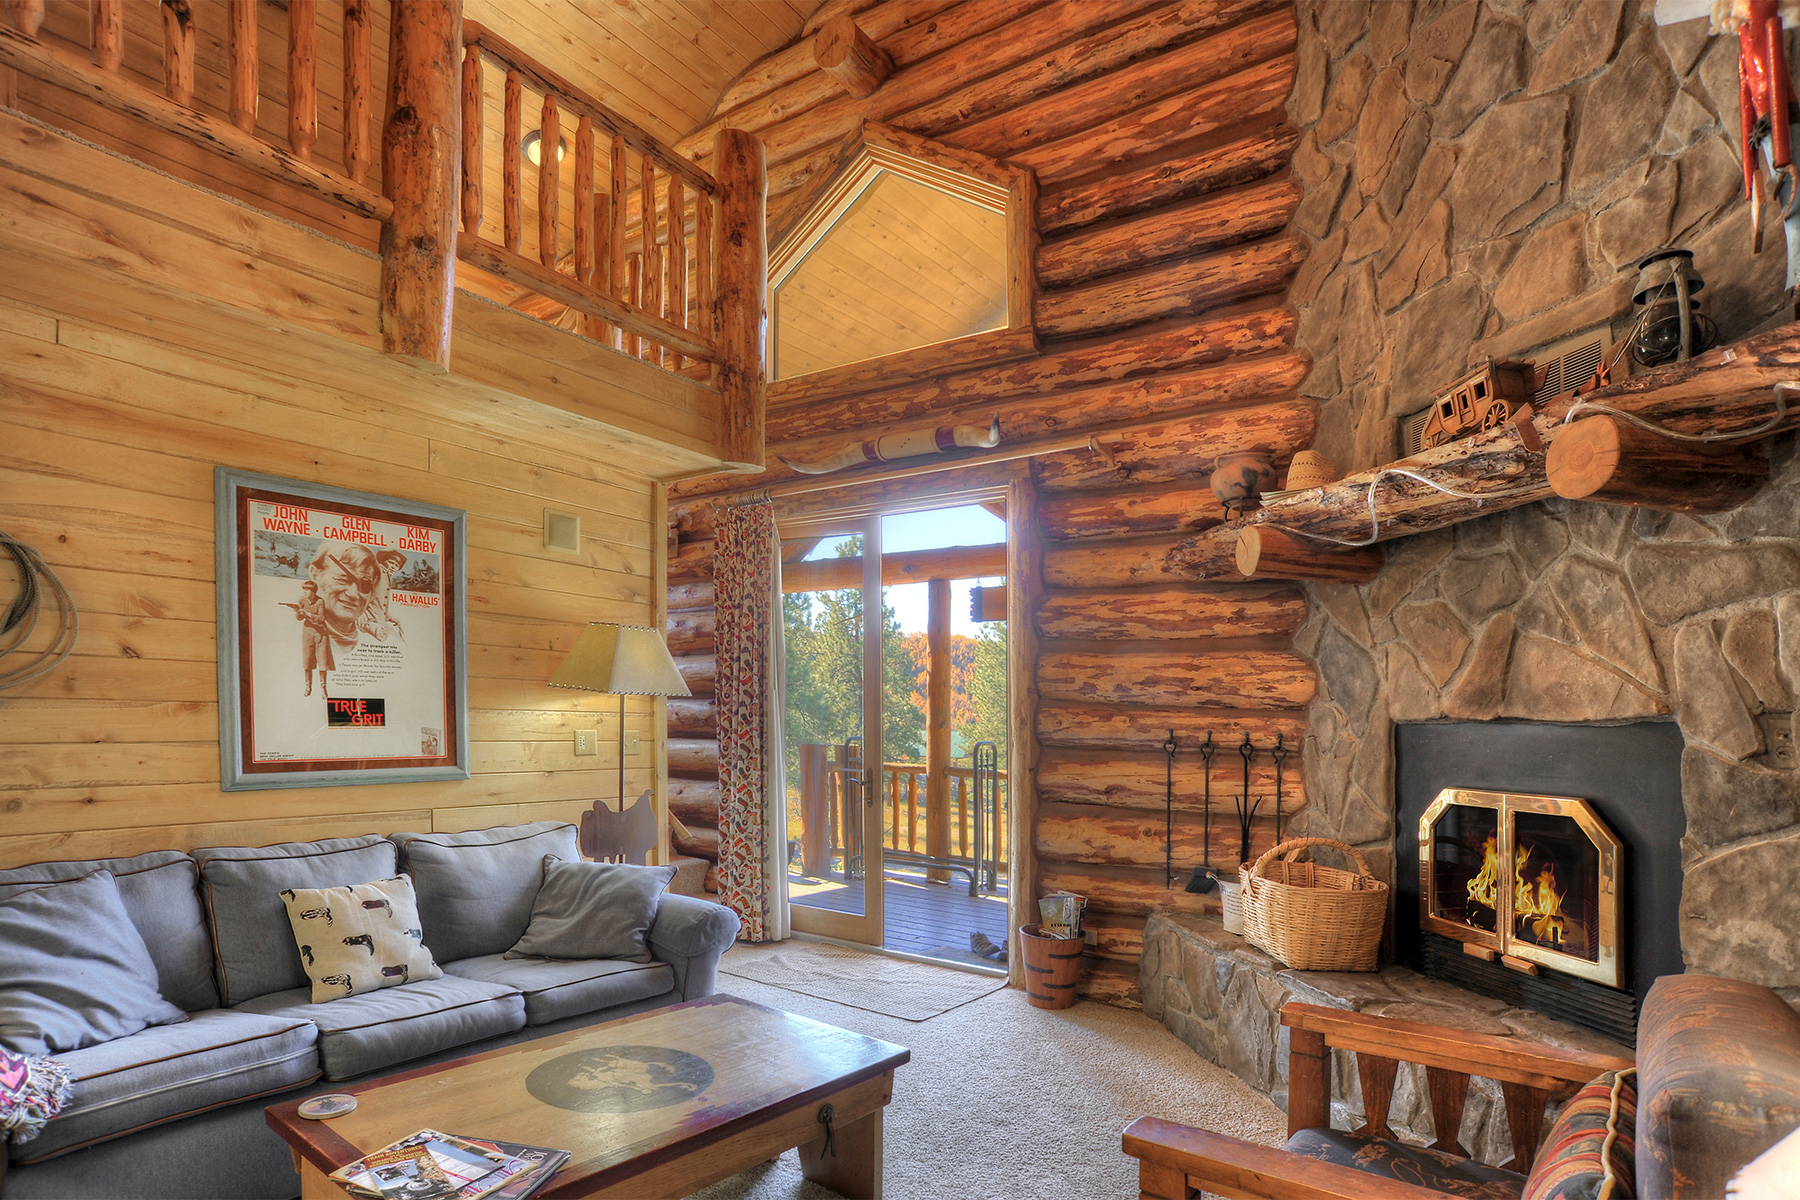 mountain ranch single guys Search mountain ranch real estate property listings to find homes for sale in mountain ranch, ca browse houses for sale in mountain ranch today.